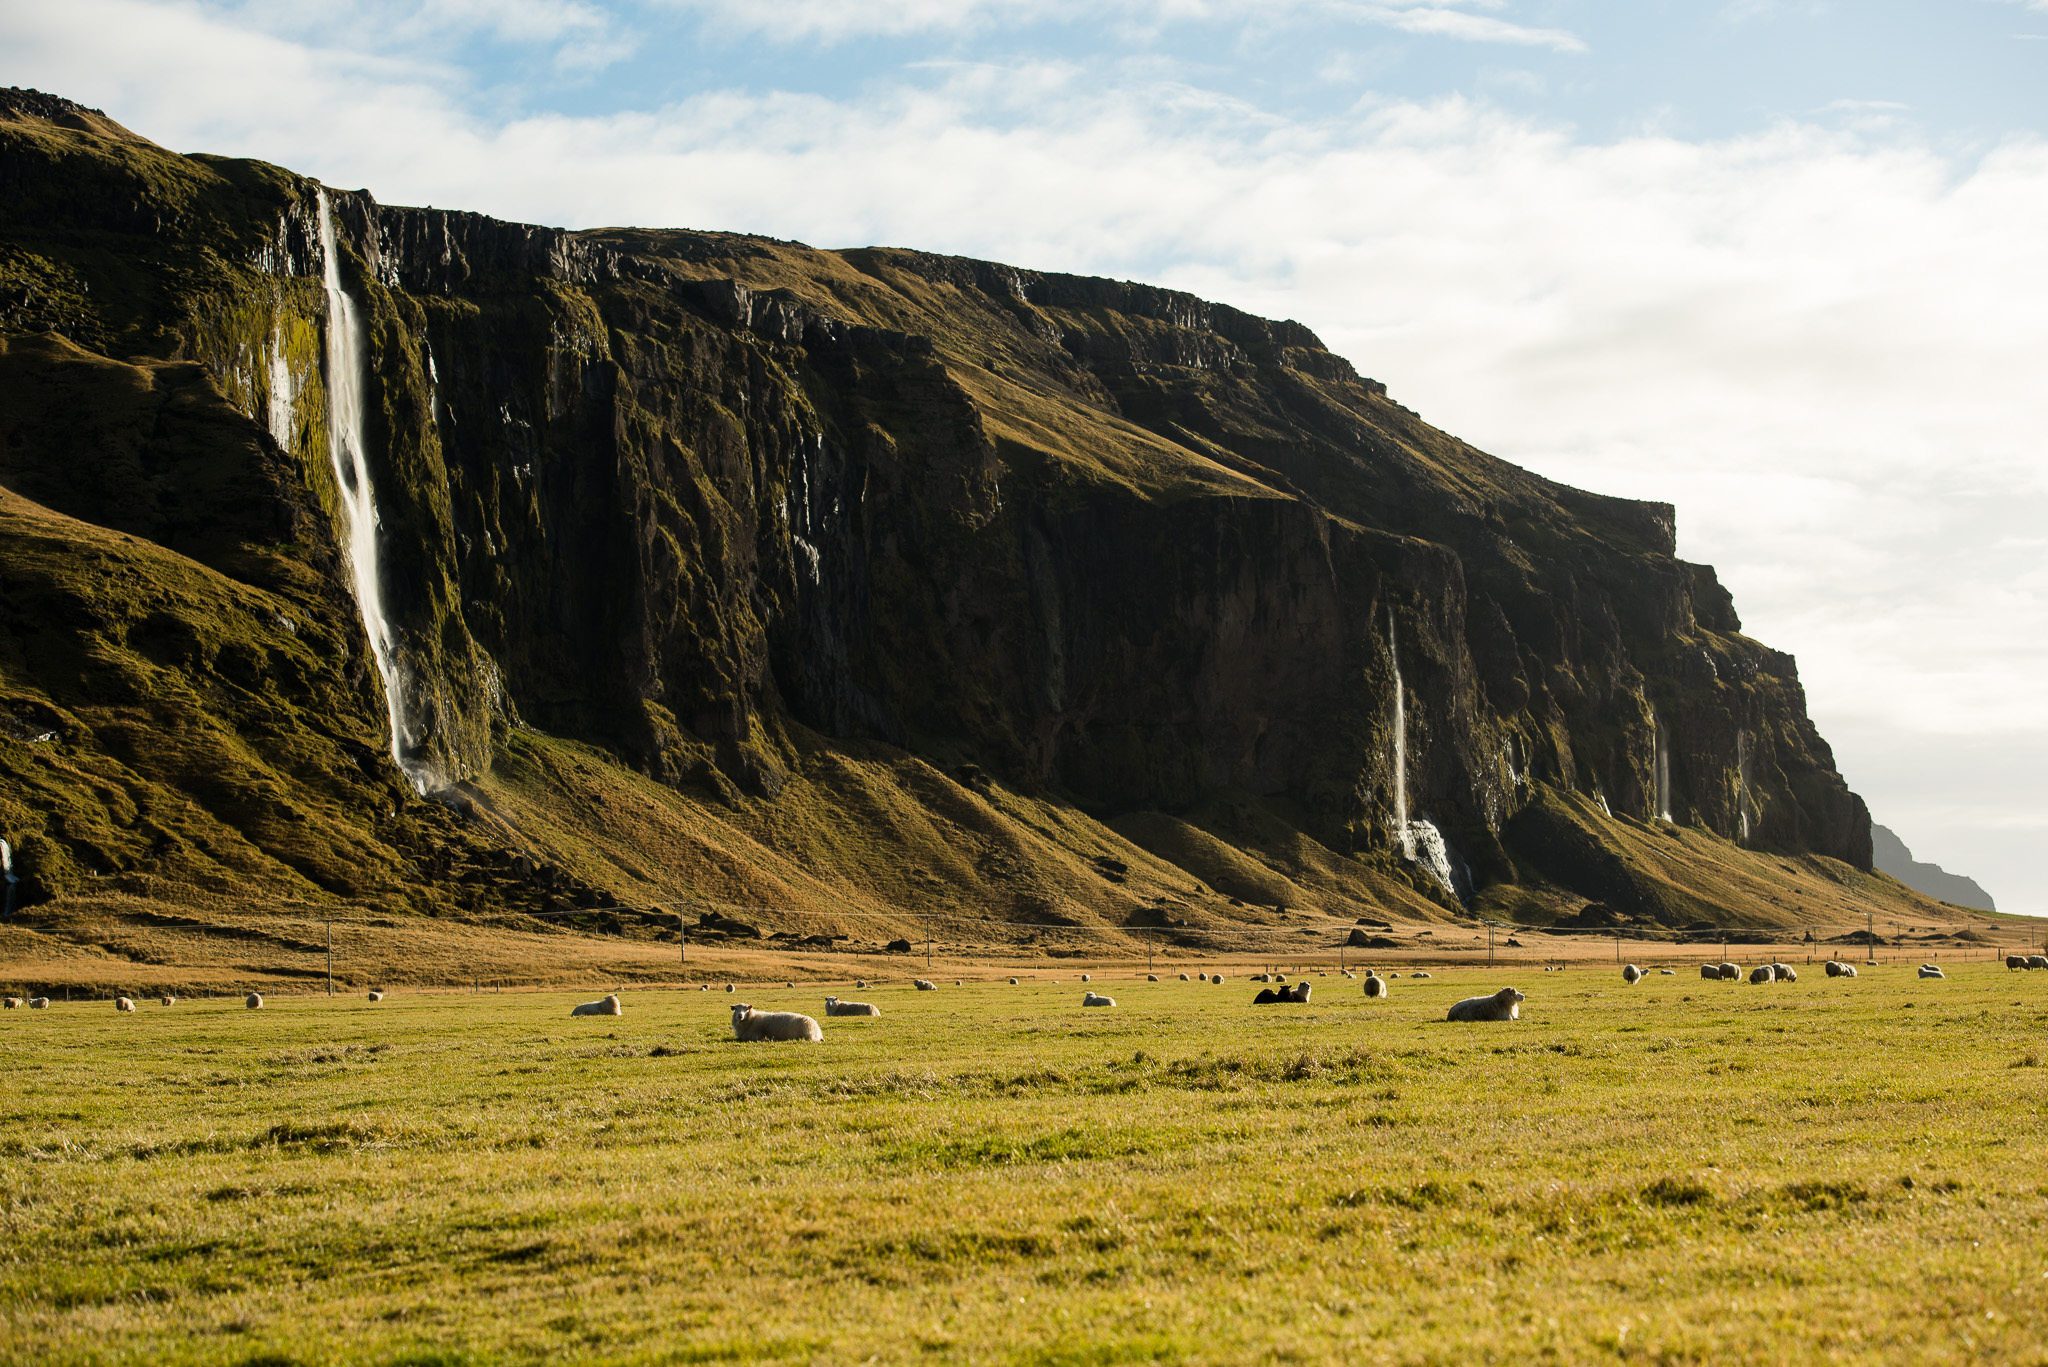 Iceland in a nutshell: sheep and waterfalls.